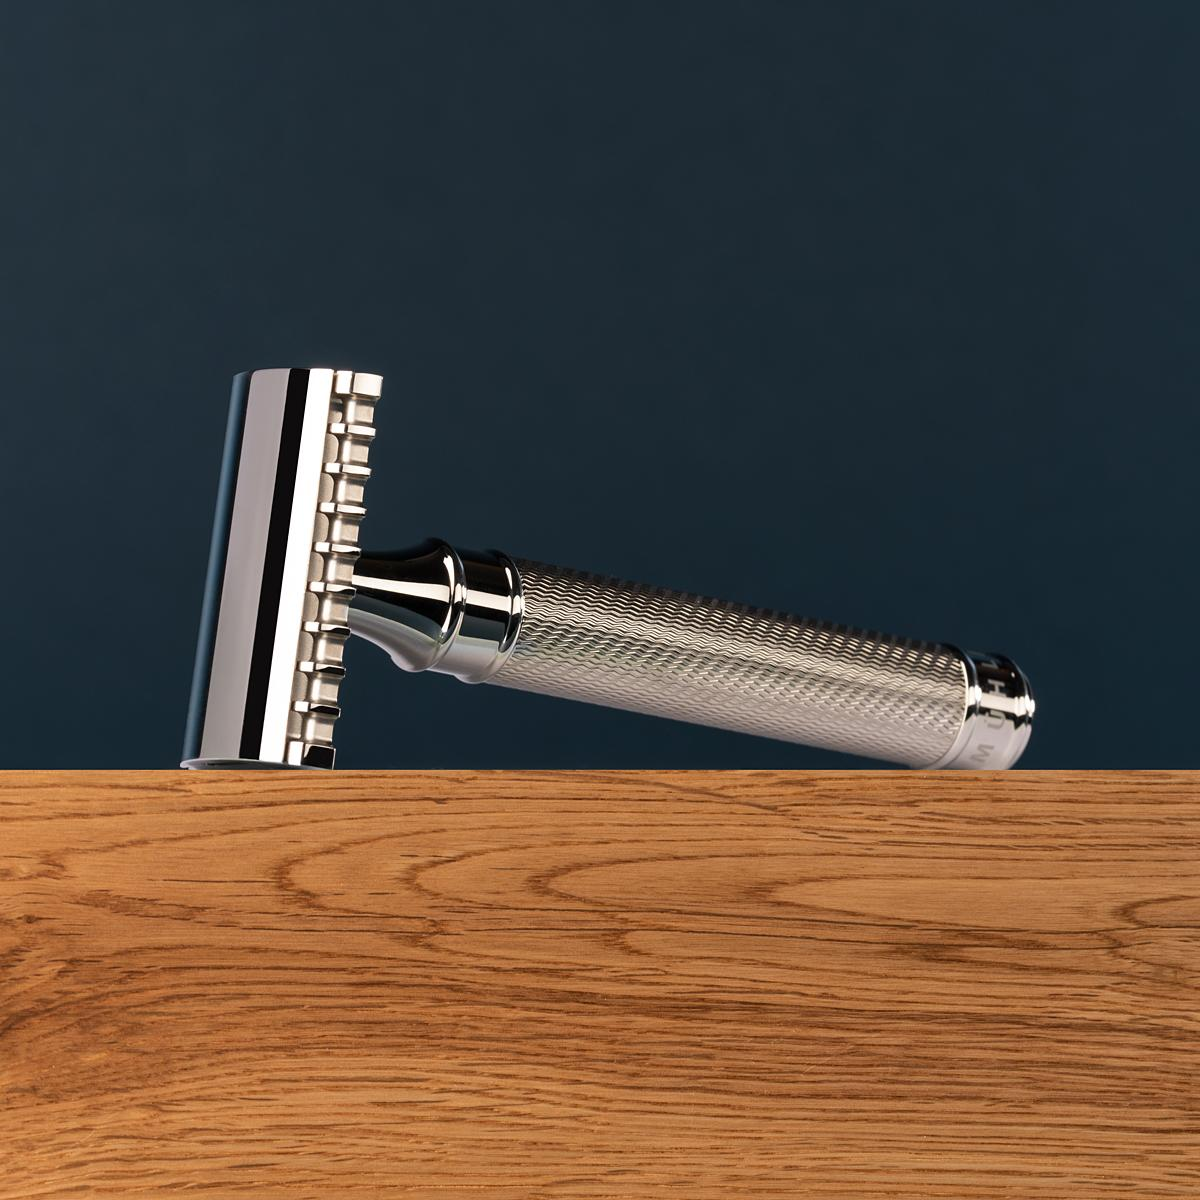 R41GS Muehle stainless steel razor